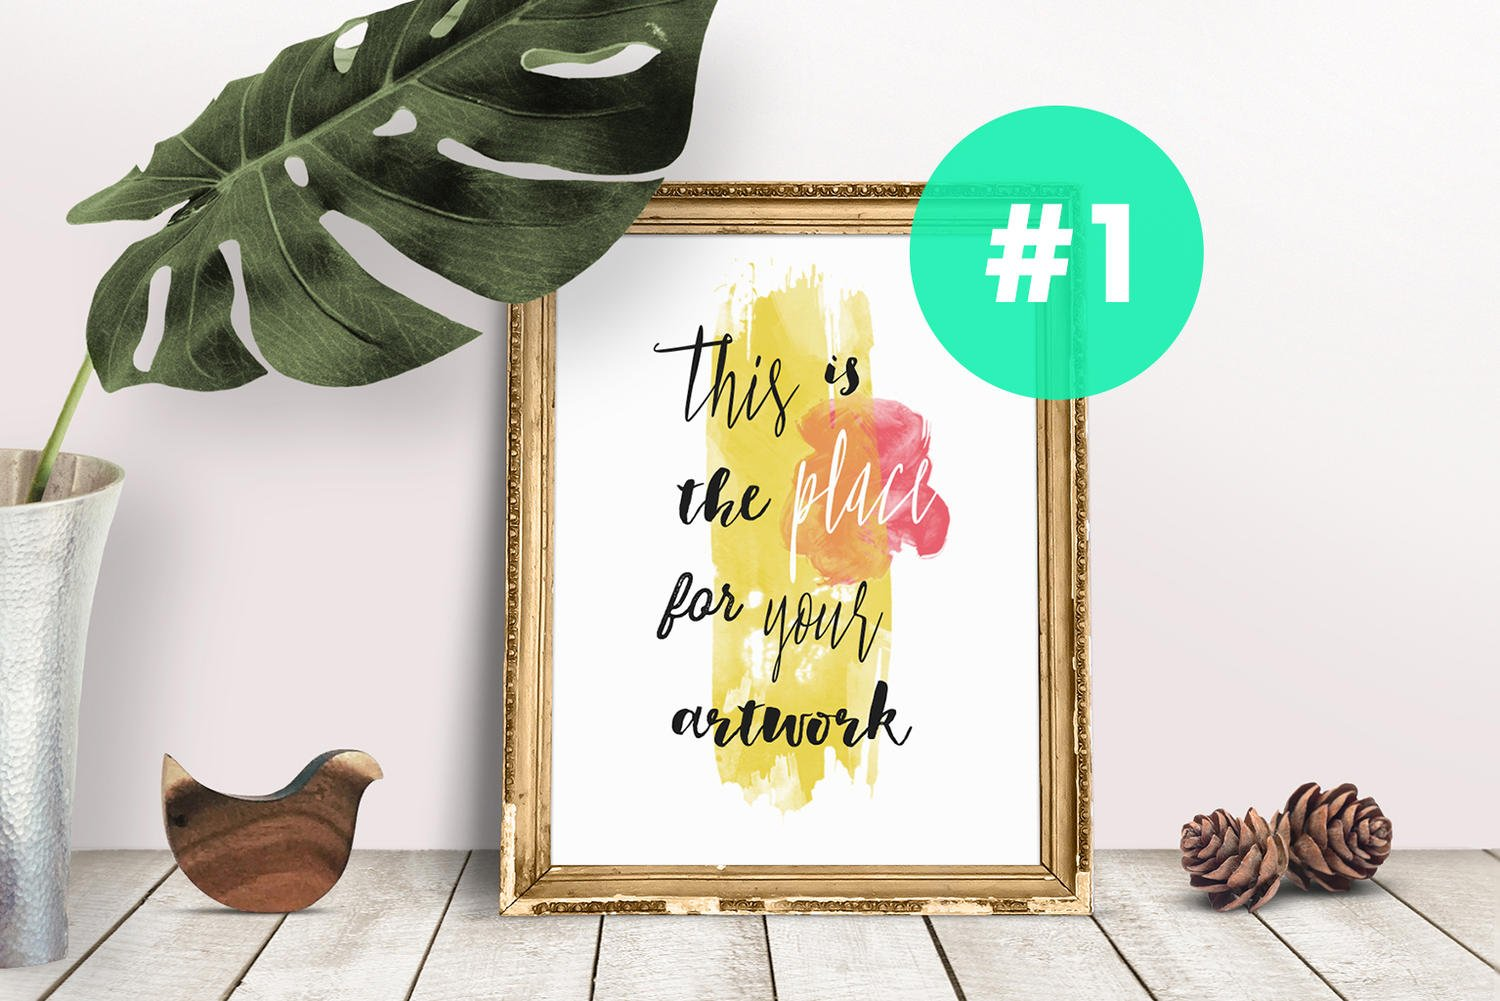 Your Print Inside Fully Editable Framed .psd Mockup by friskweb - 96525